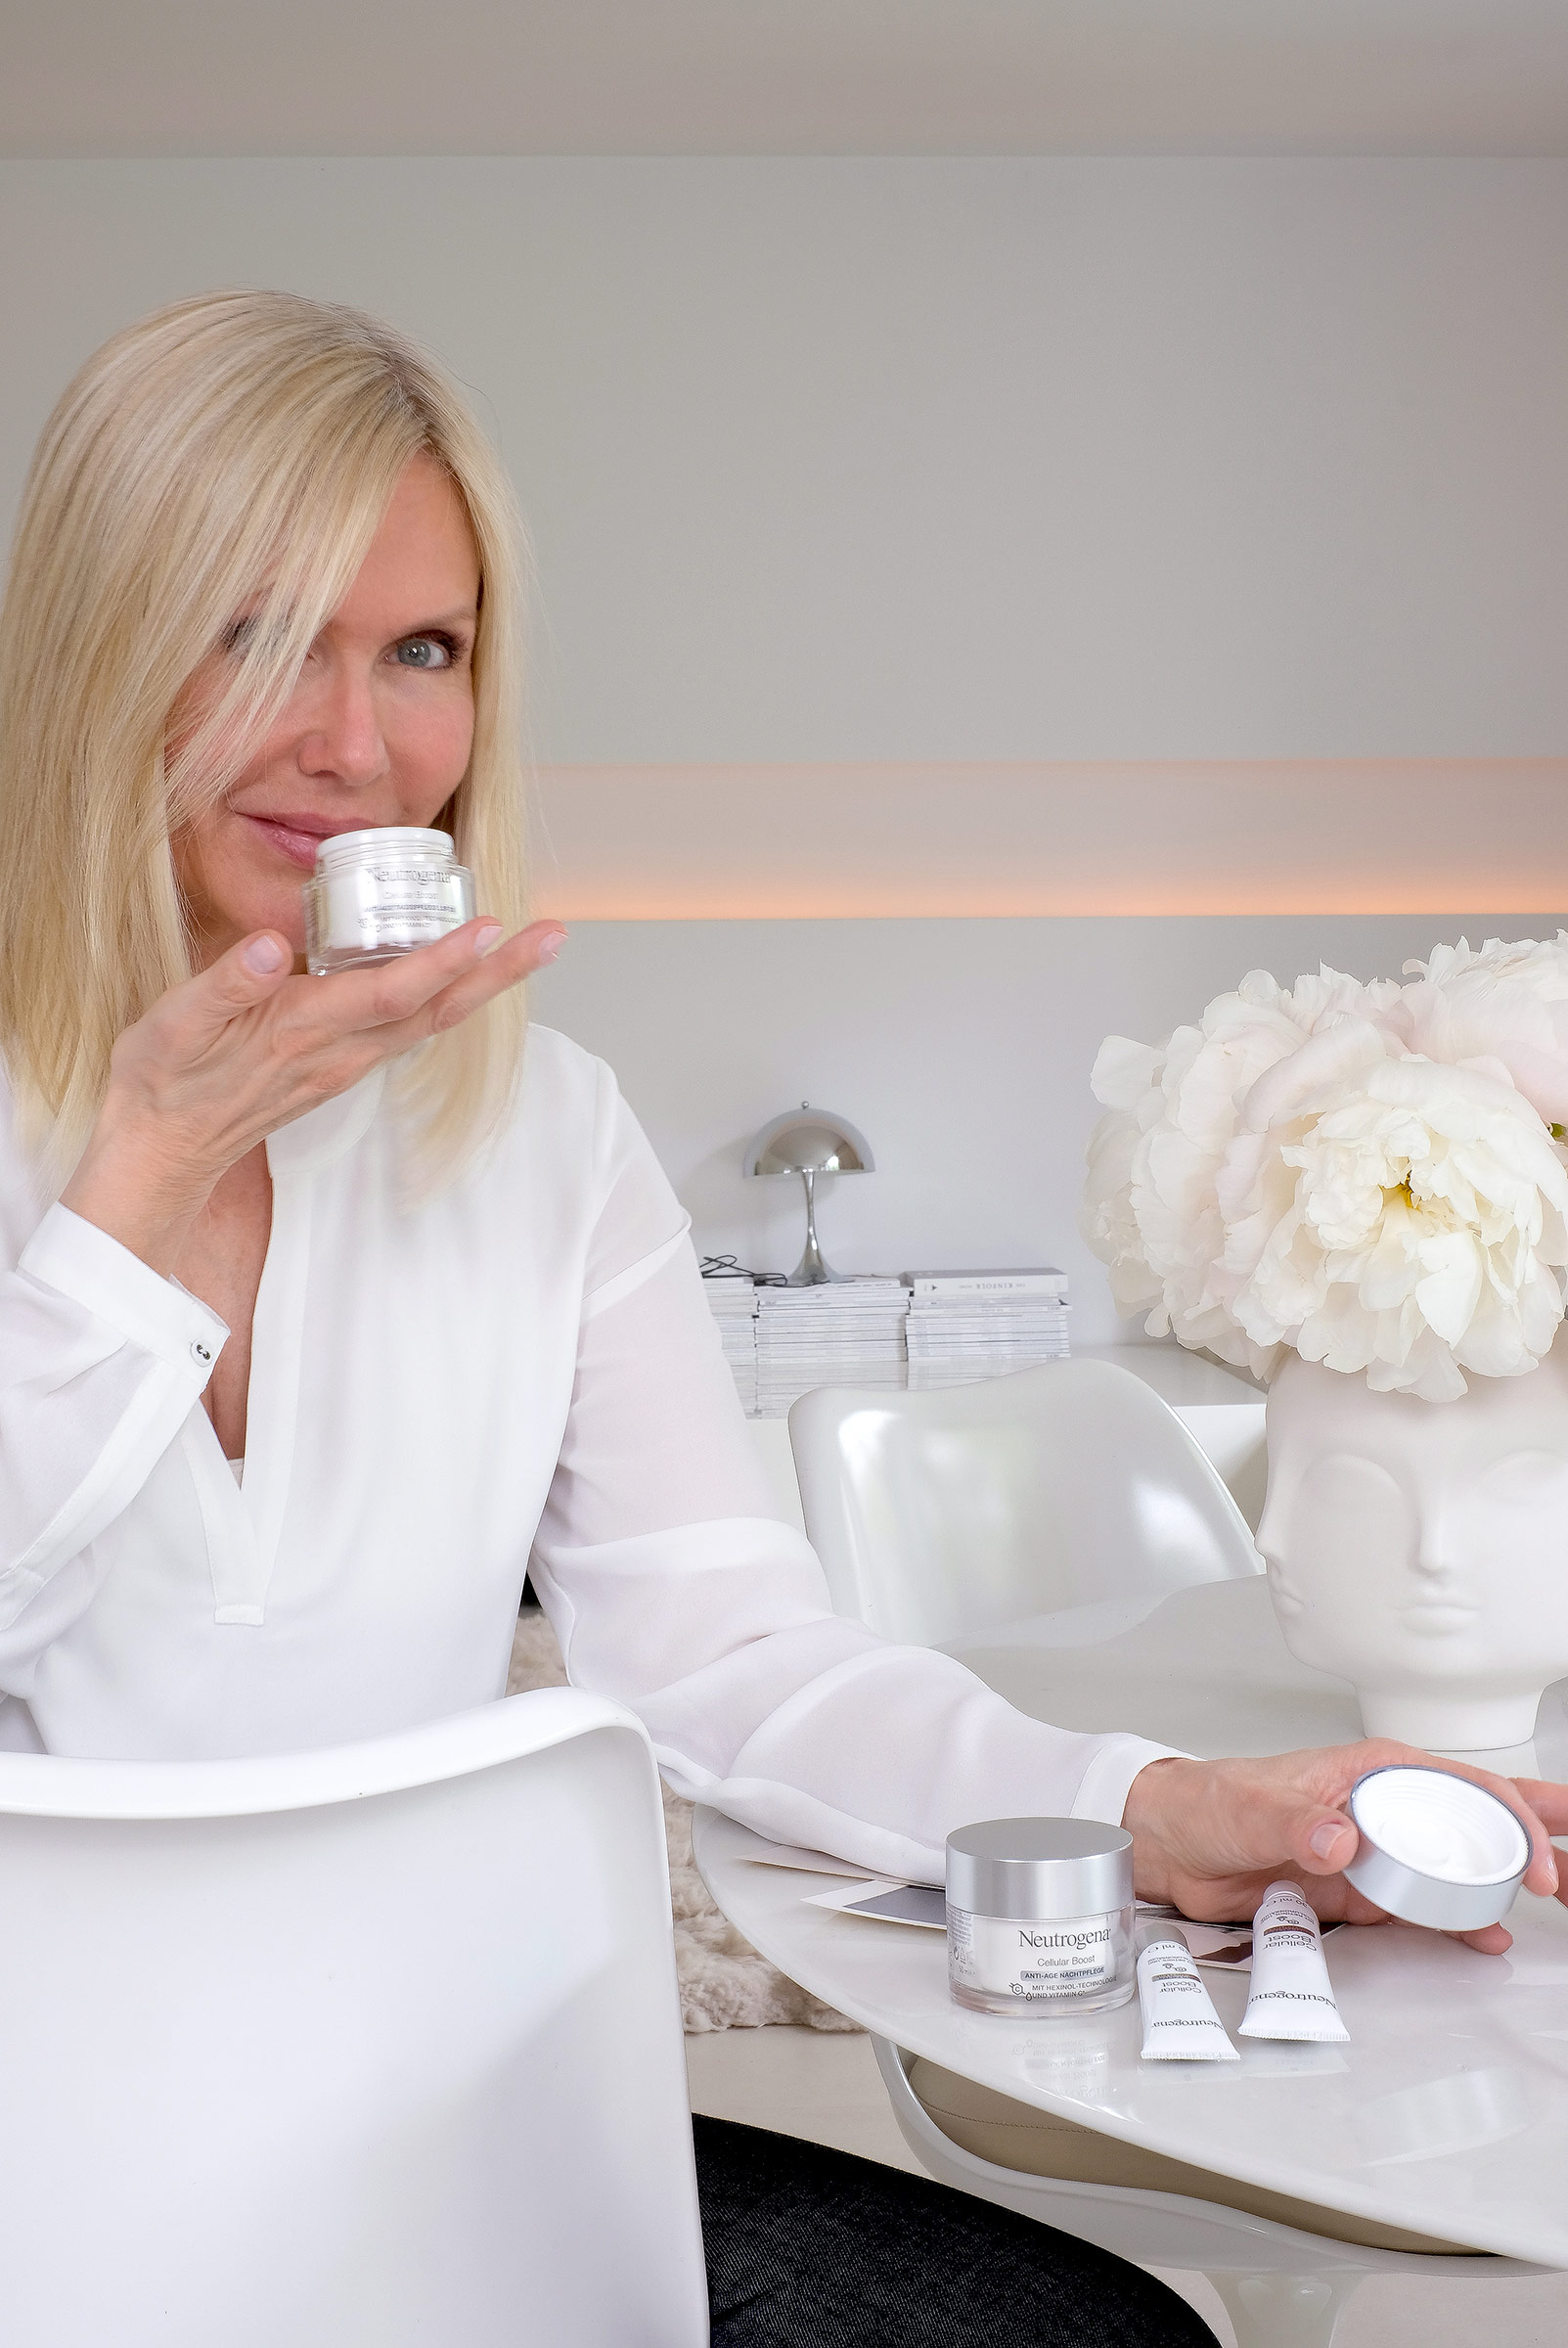 blonde woman sitting on a chair, table, holding Neutrogena cellular boost skincare product in her hand